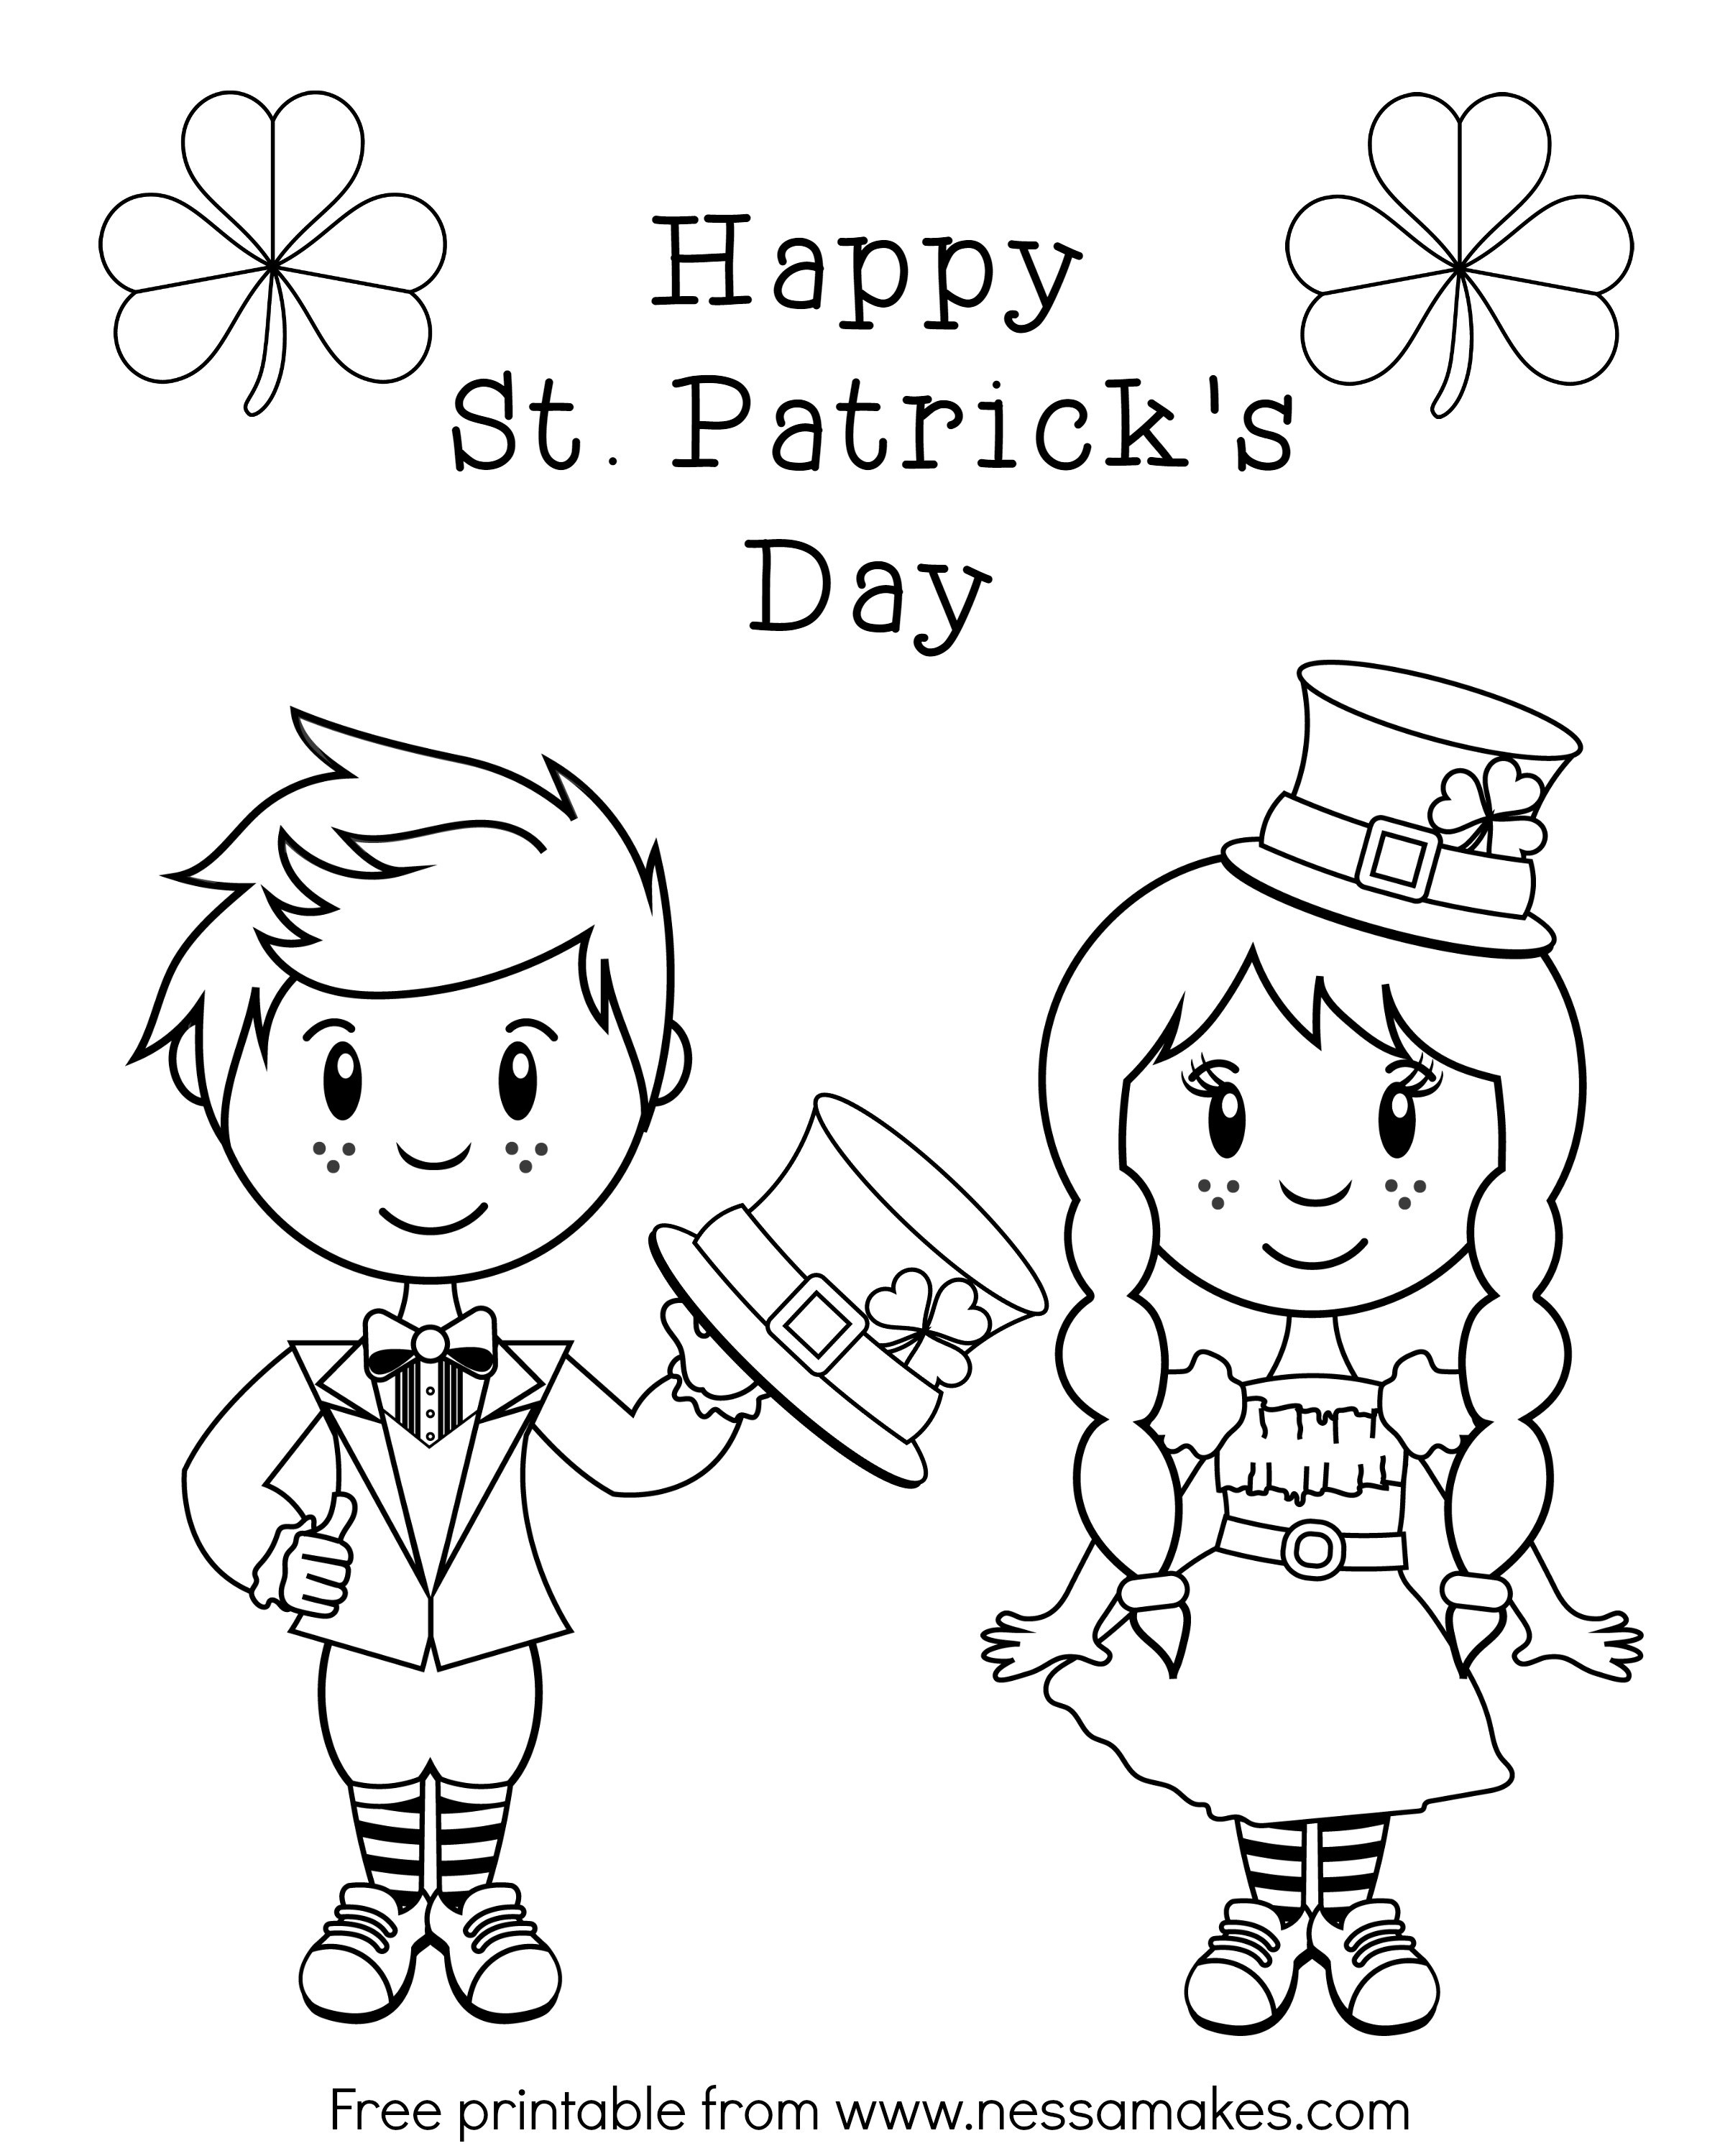 Free Printable St. Patrick\'s Day Coloring Sheets - Paper ...